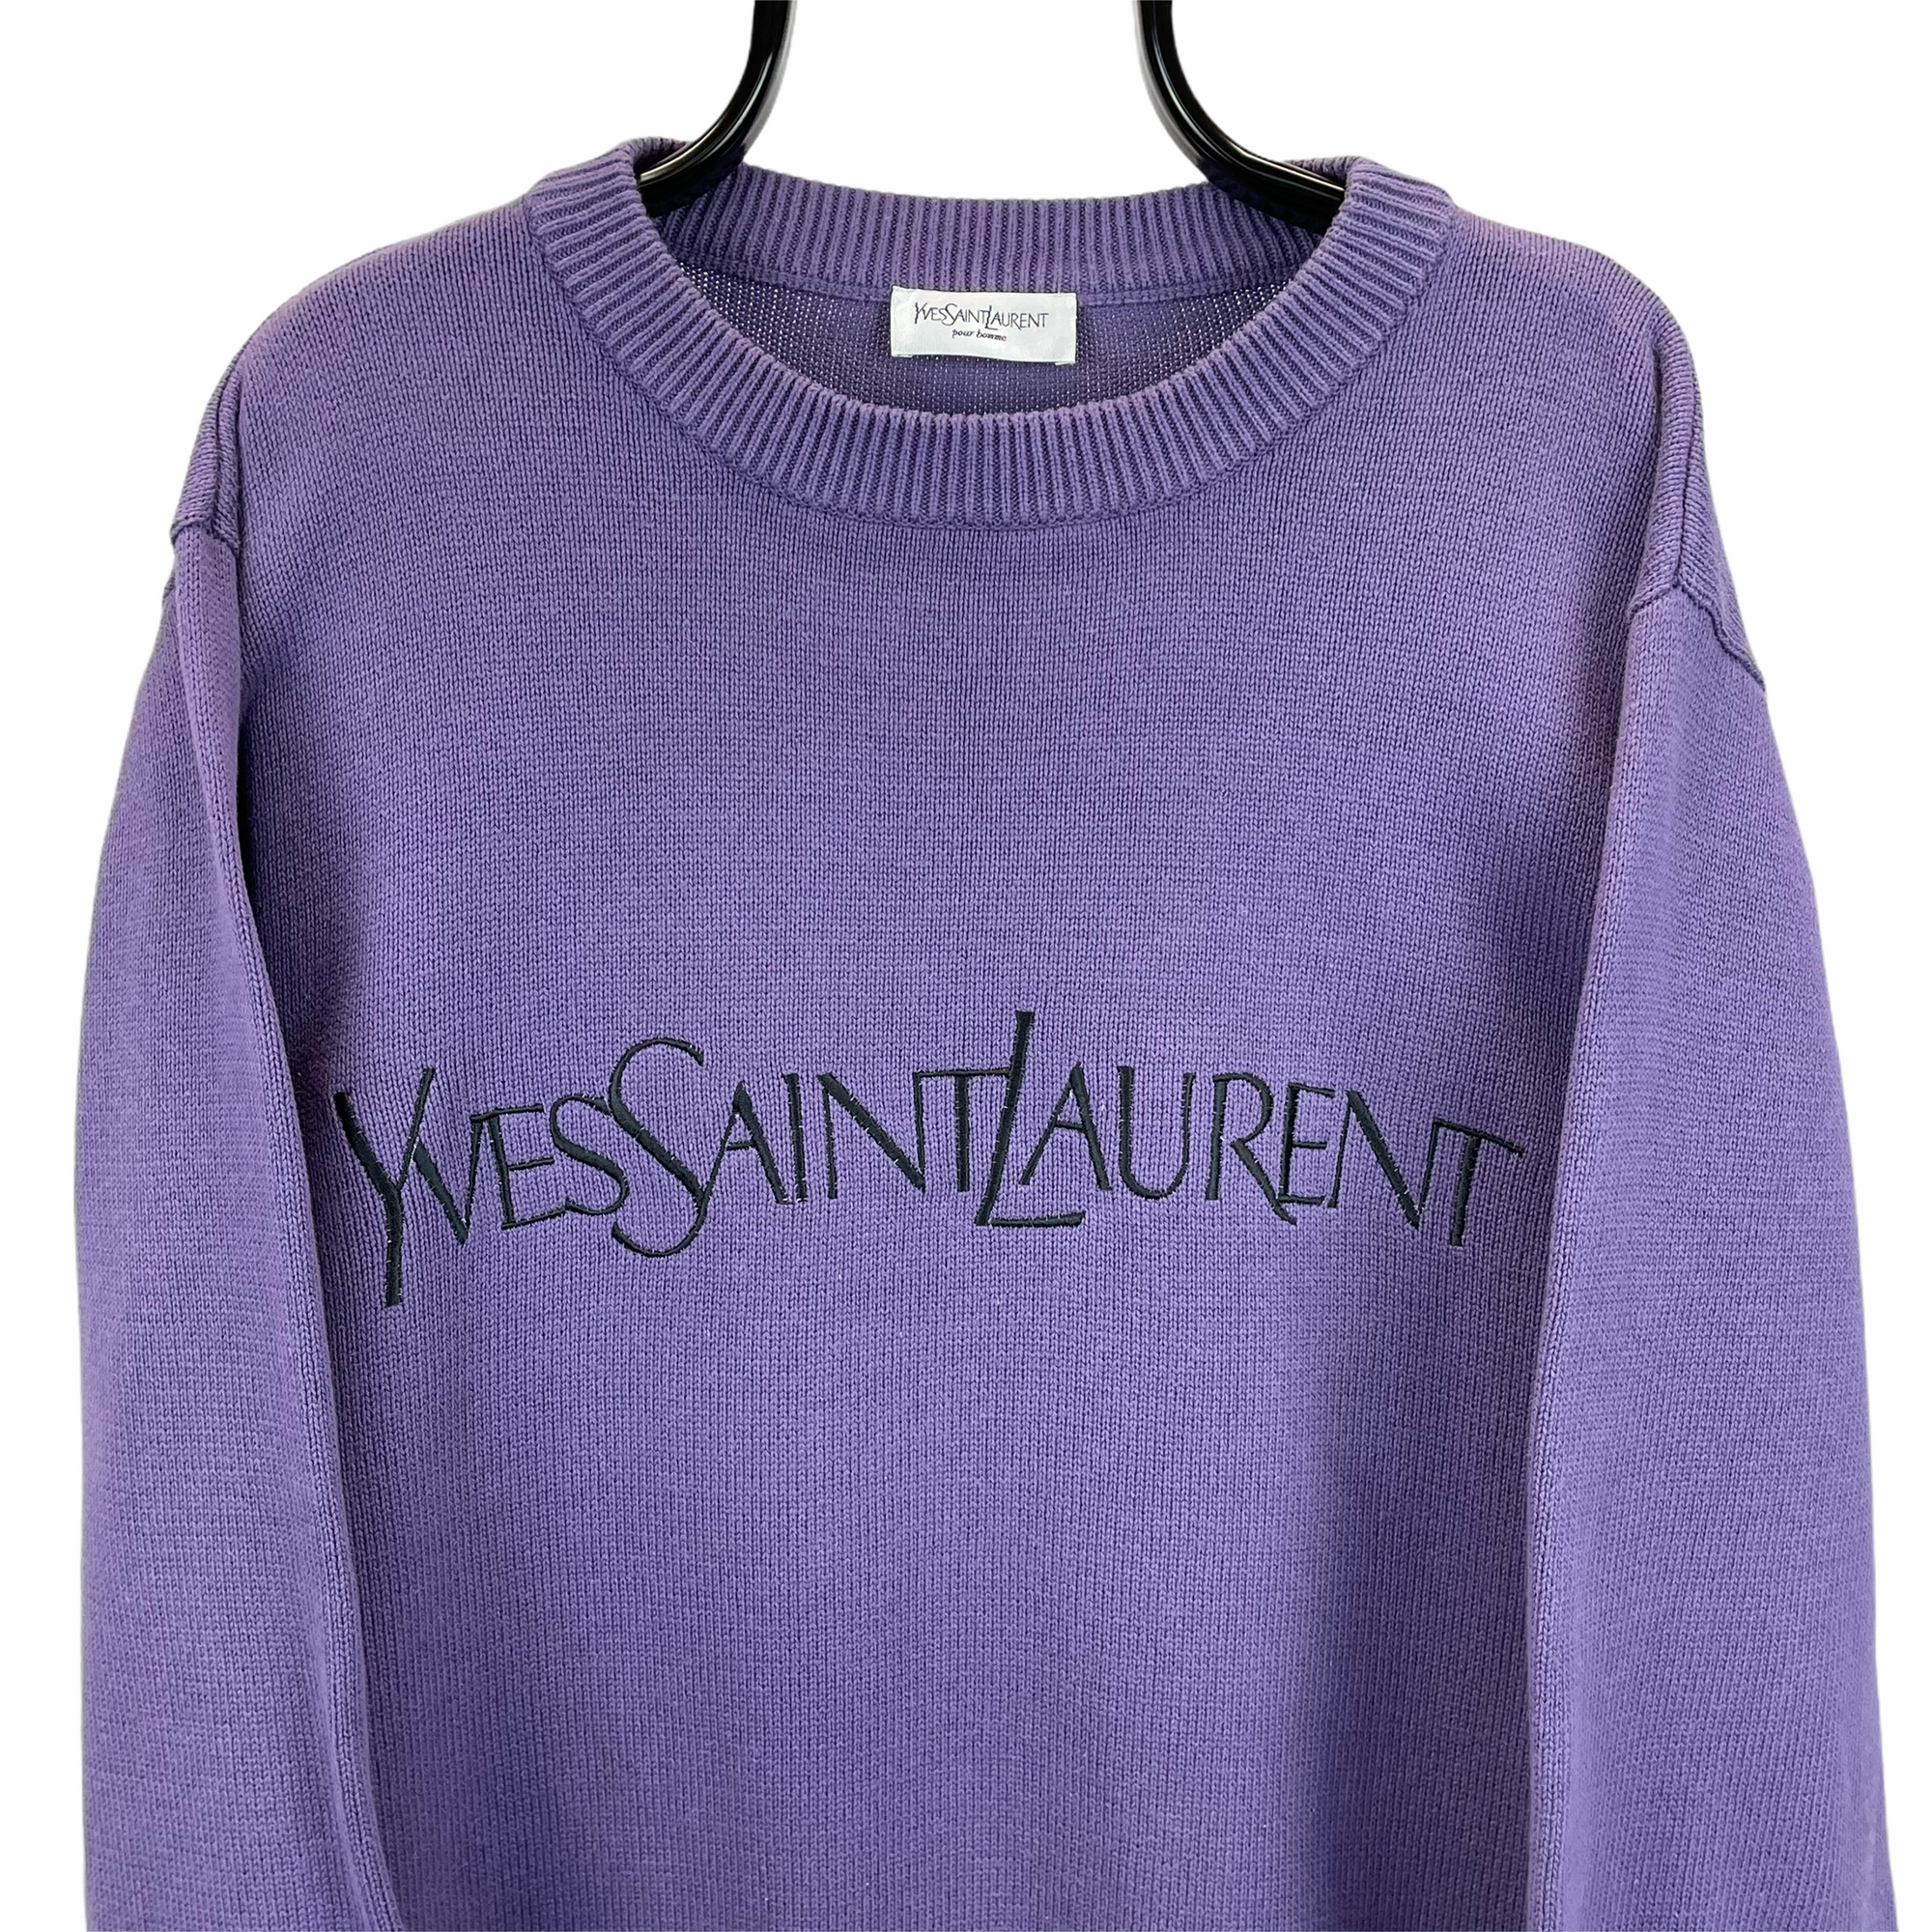 Vintage YSL Spellout Knit Sweater in Purple - Men's Large/Women's XL